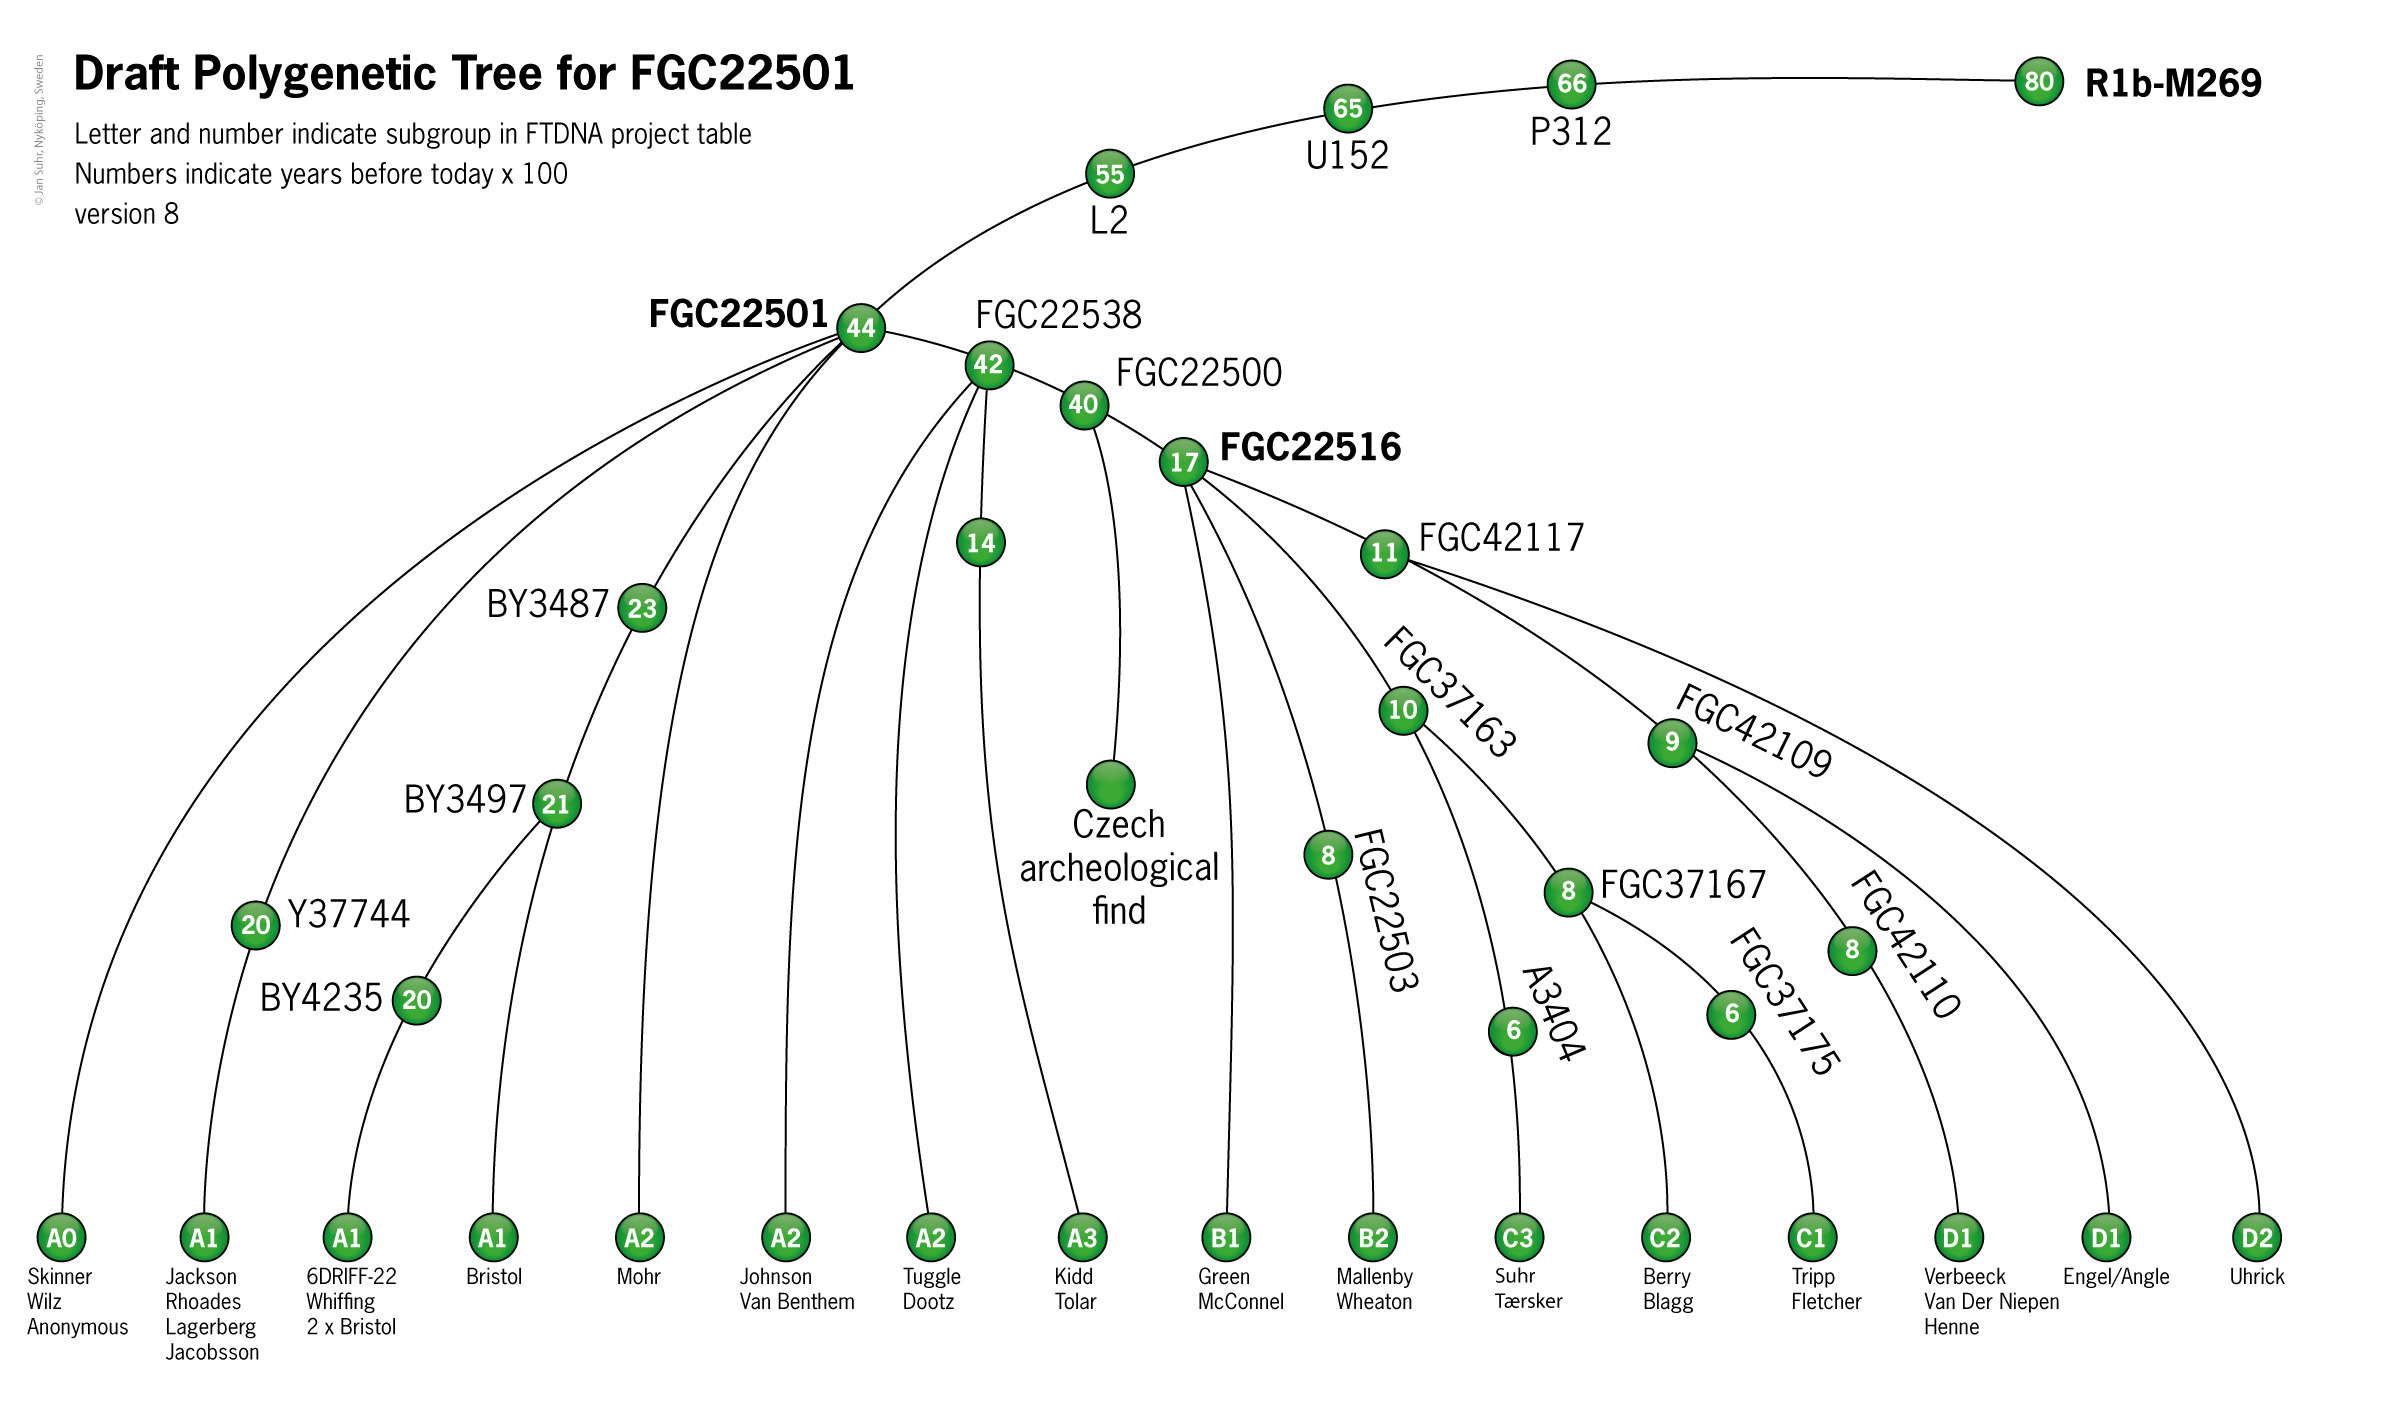 Phylogenetic Tree FGC22501 8